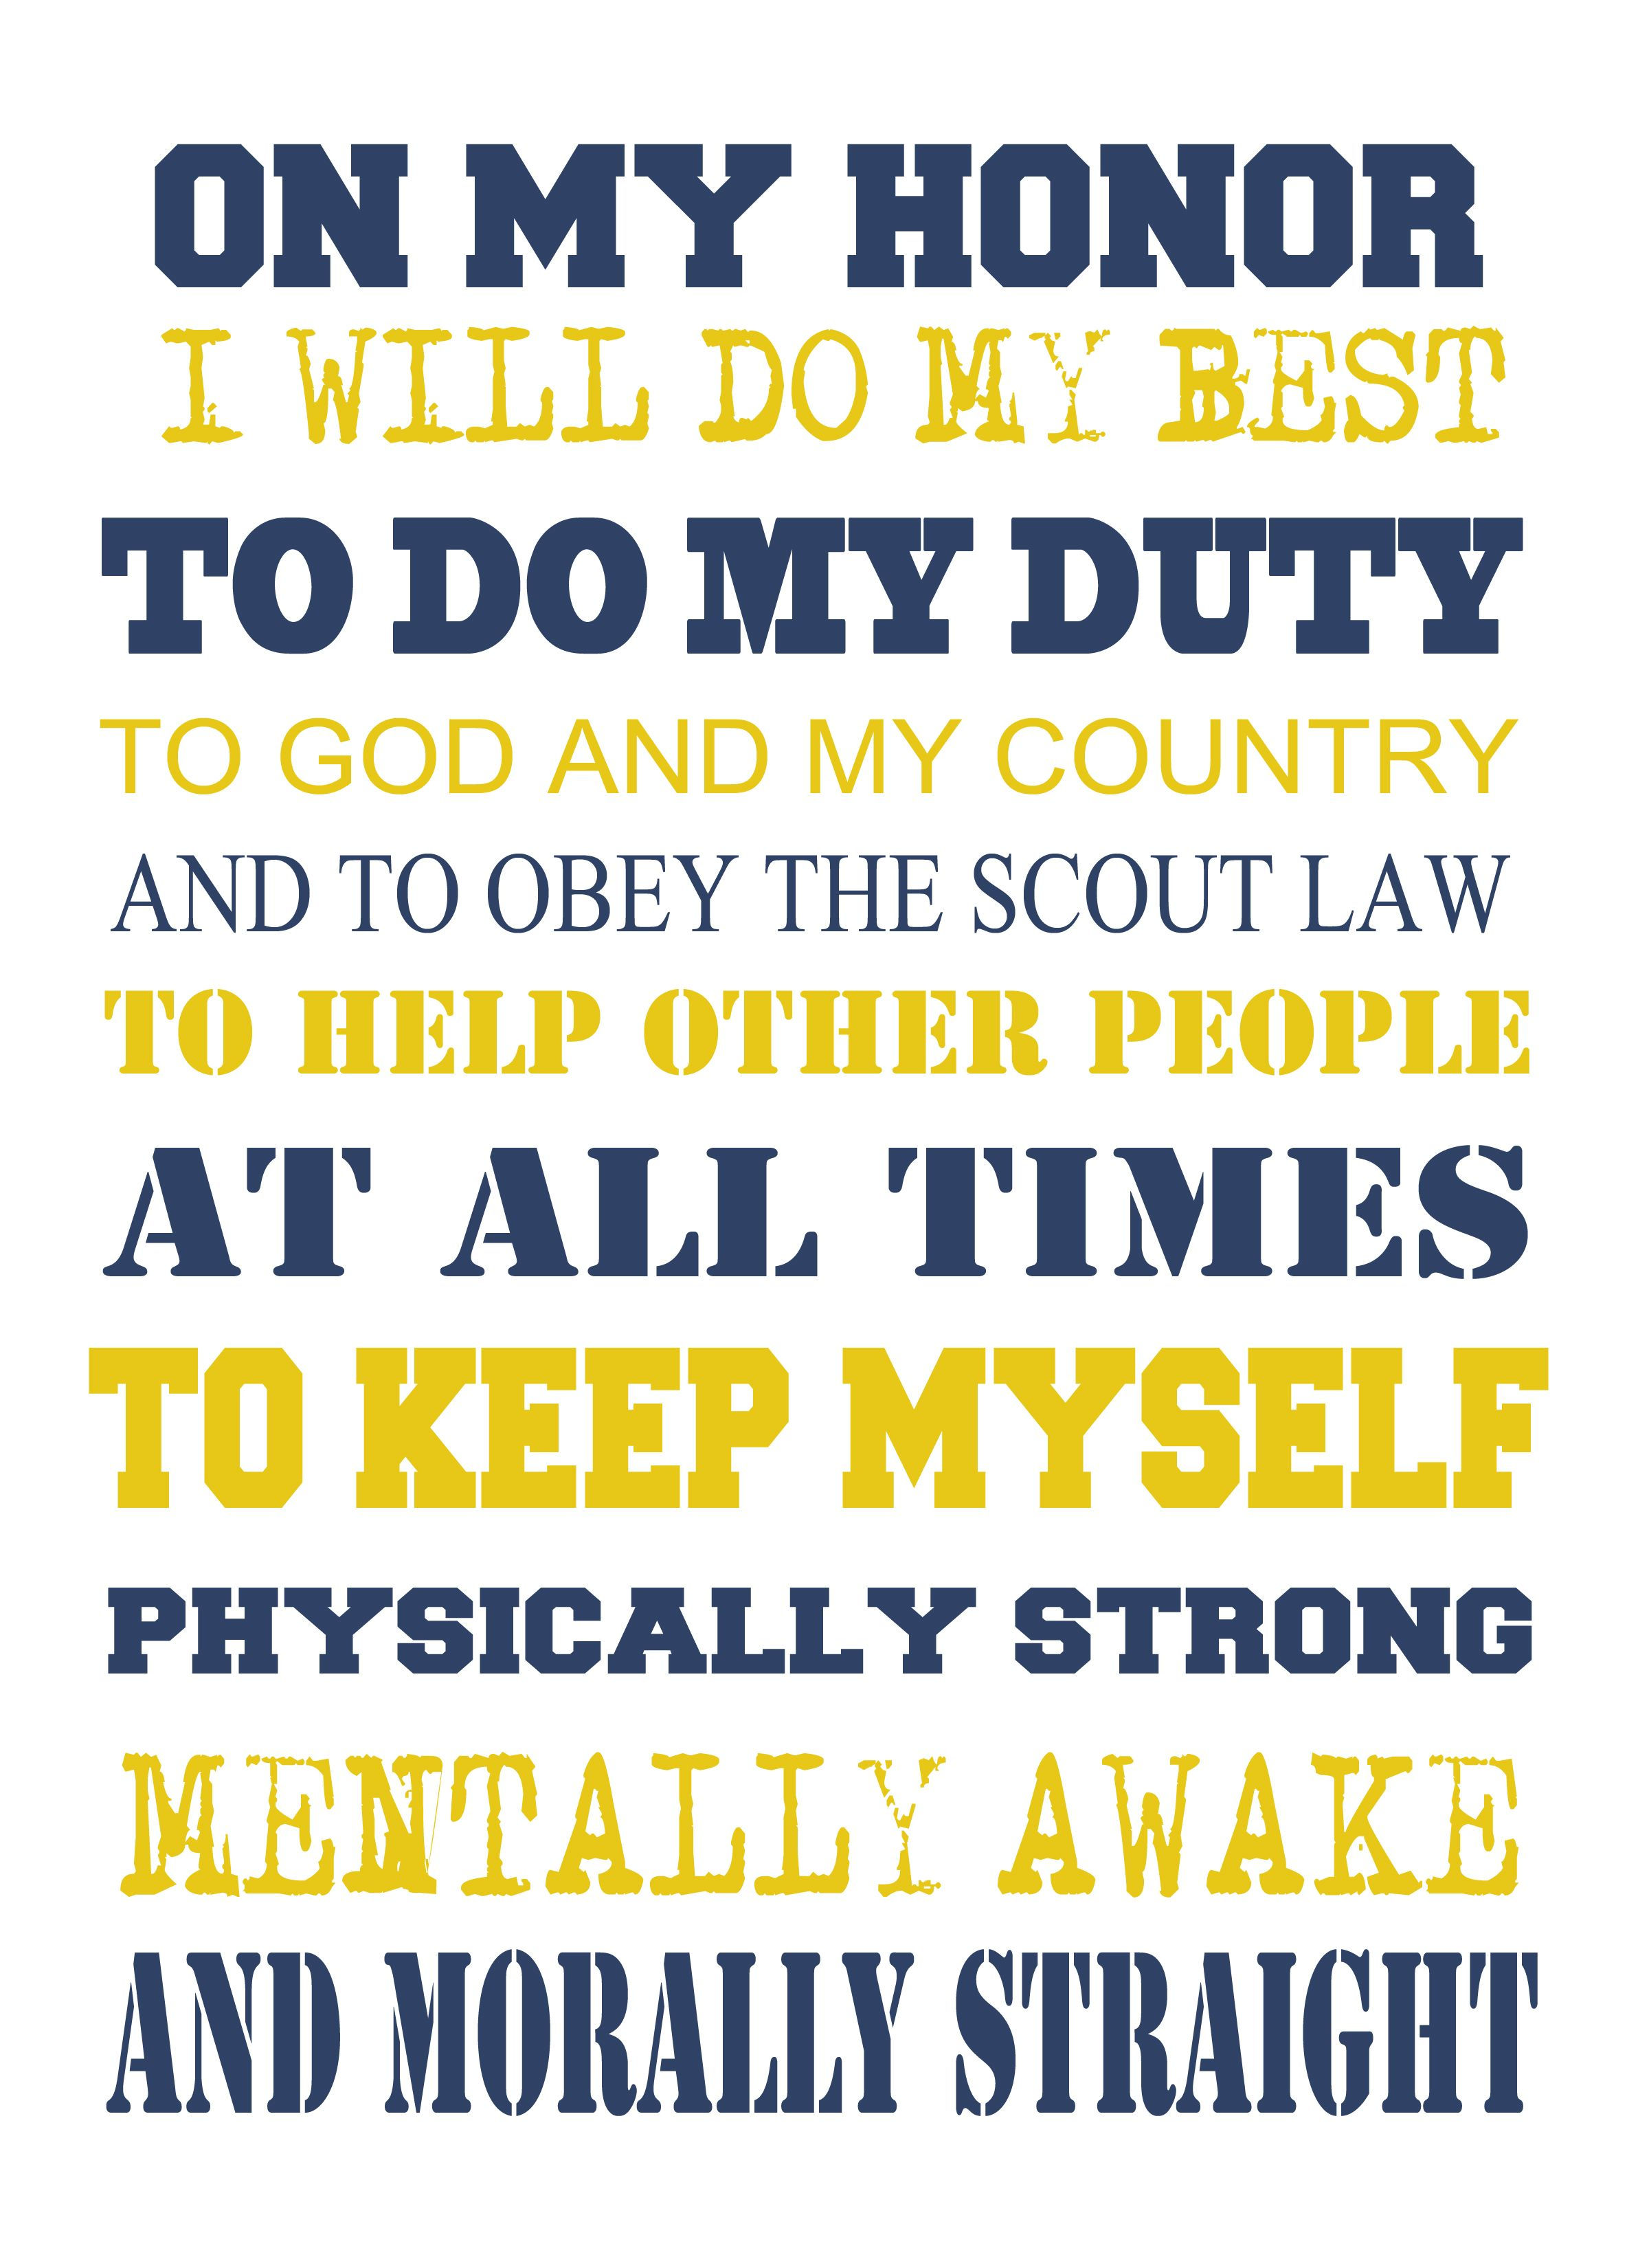 graphic regarding Cub Scout Oath and Law Printable titled Pin upon Cub scouts